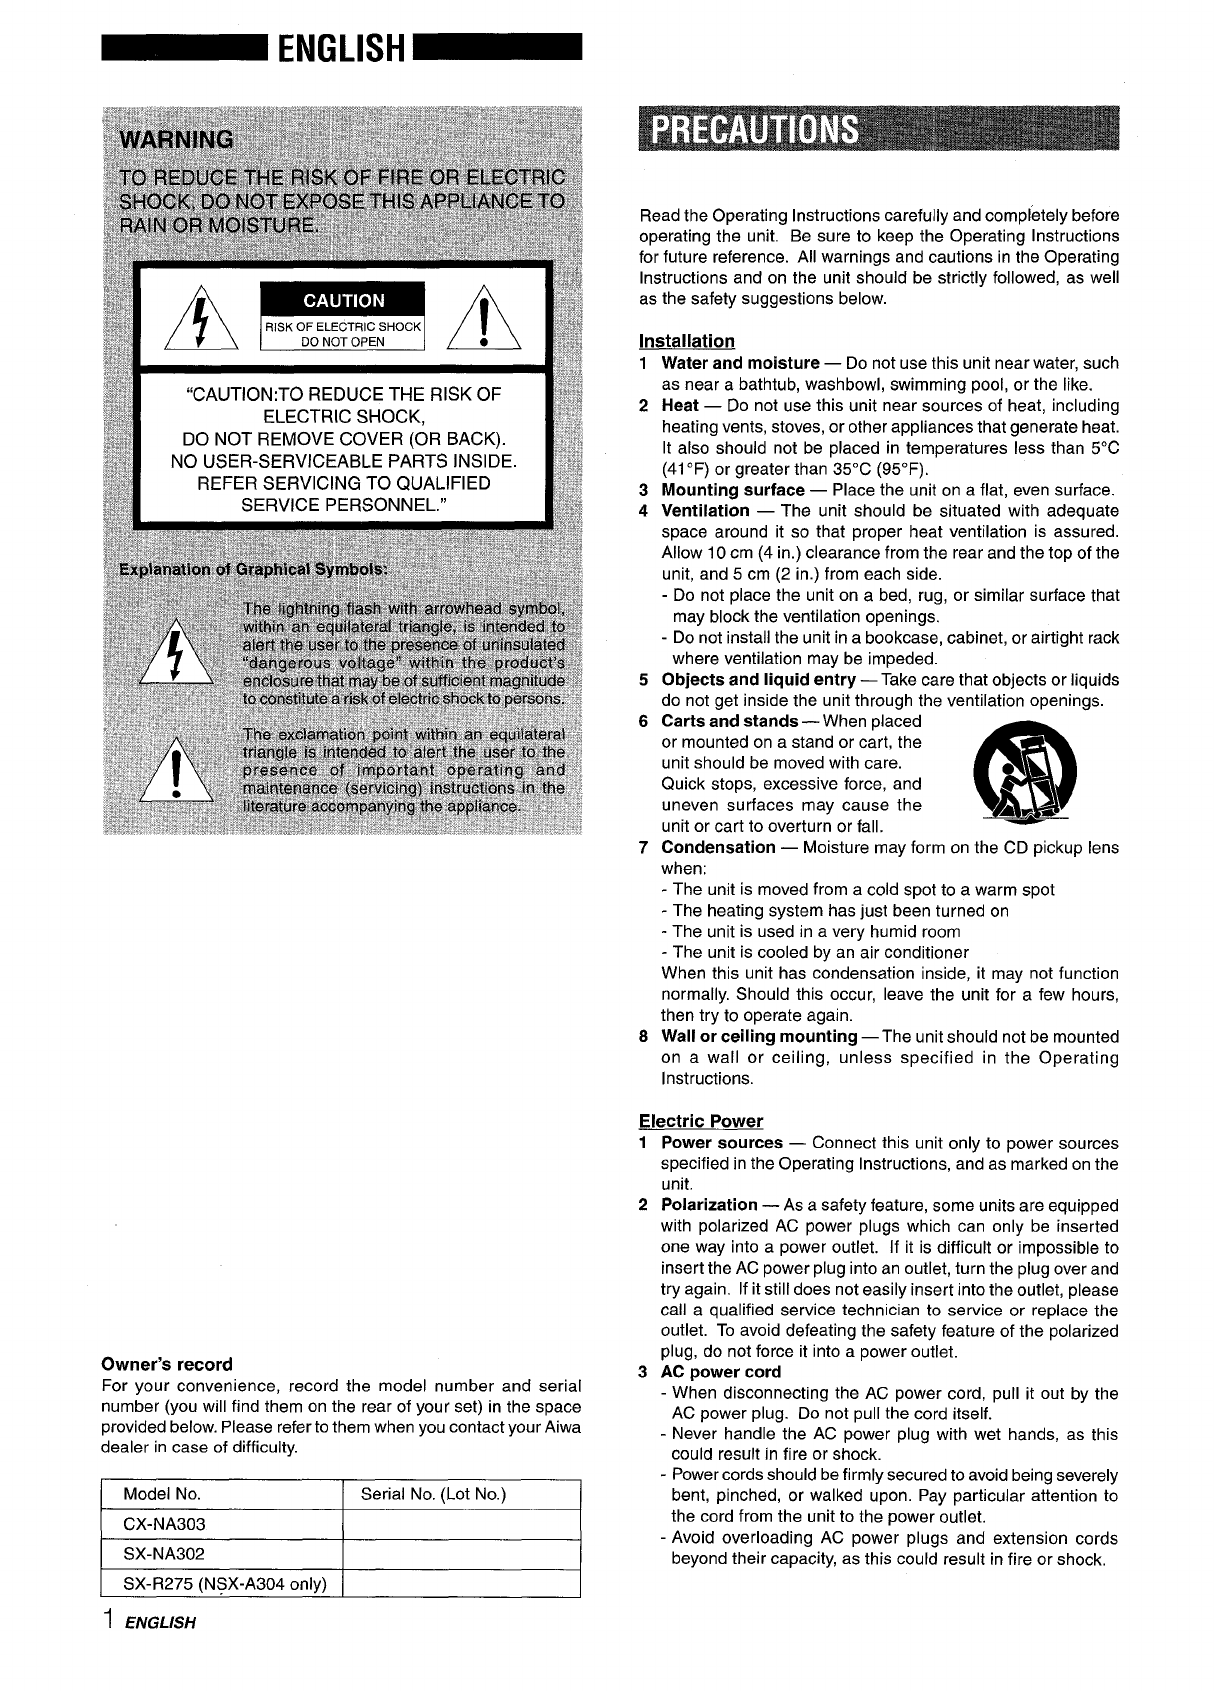 Page 2 of aiwa speaker system cx-na303 user guide | manualsonline. Com.